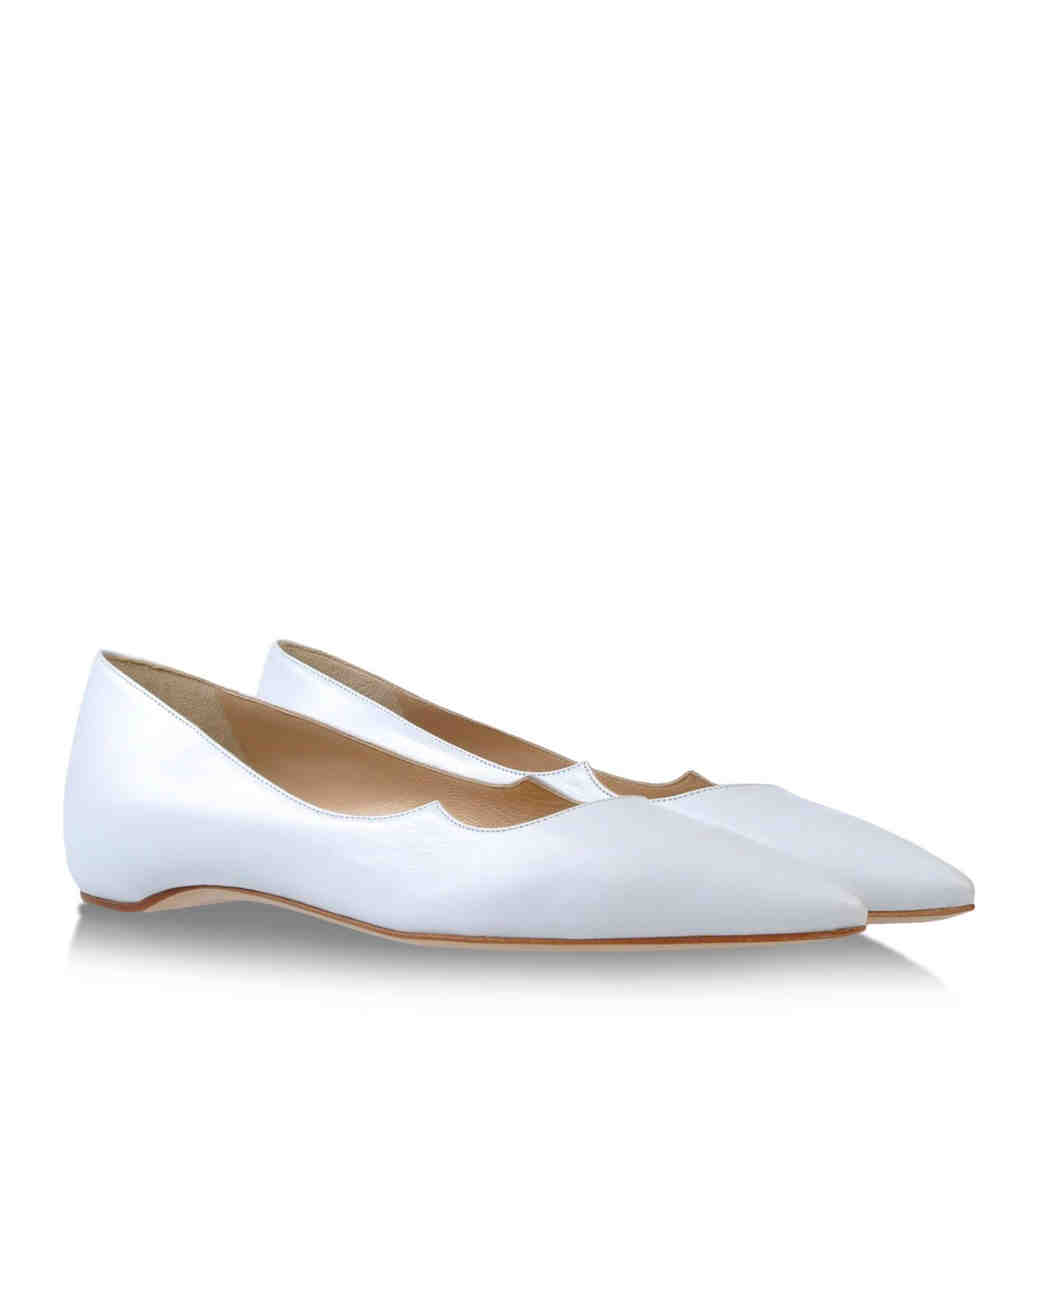 closed-toe-wedding-shoes-paul-andrew-shoescribe-1215.jpg